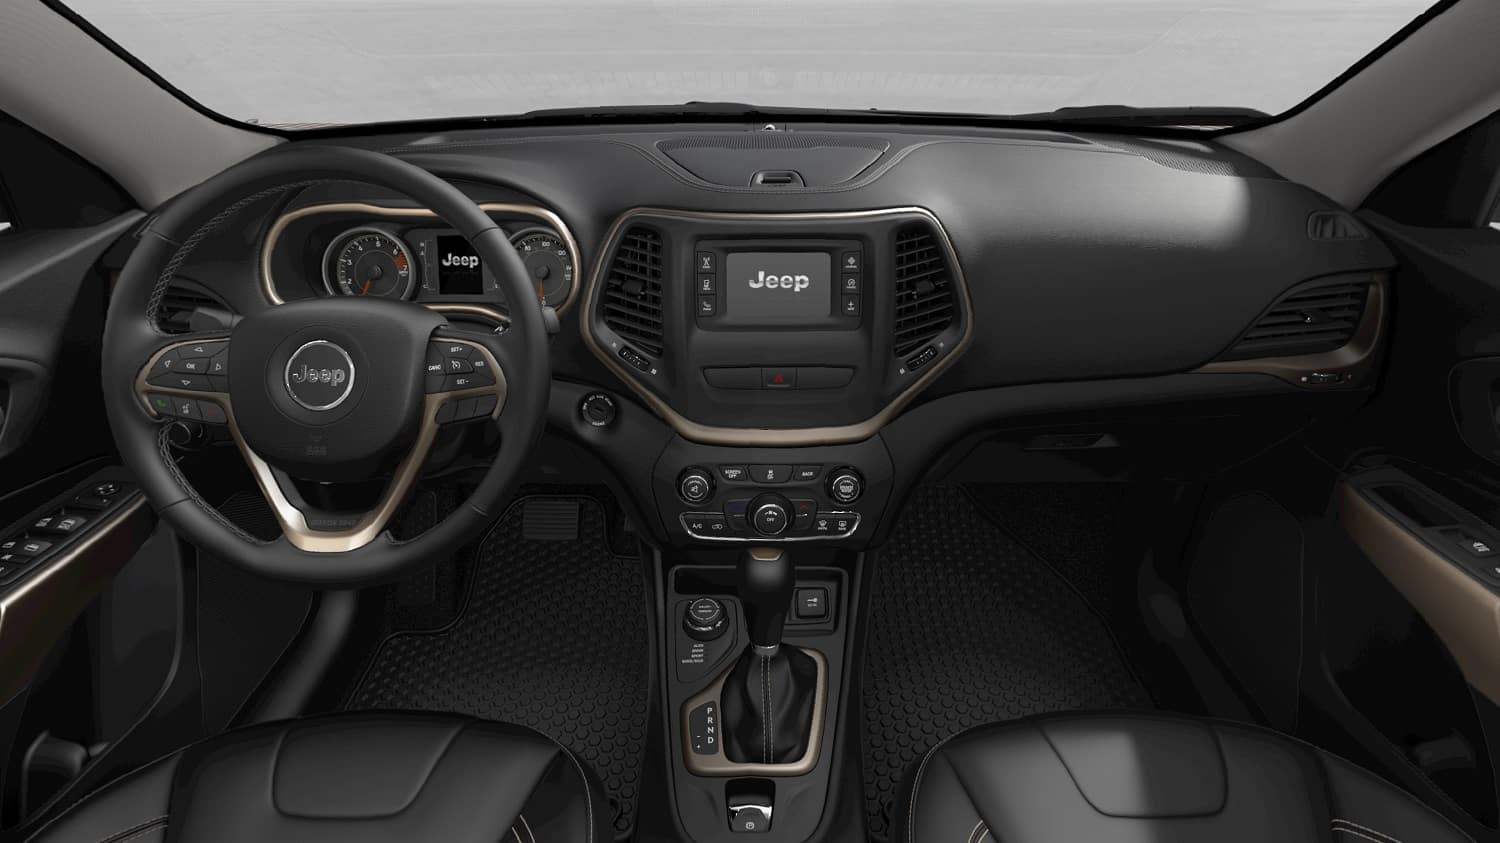 Jeep Cherokee Interior Technology